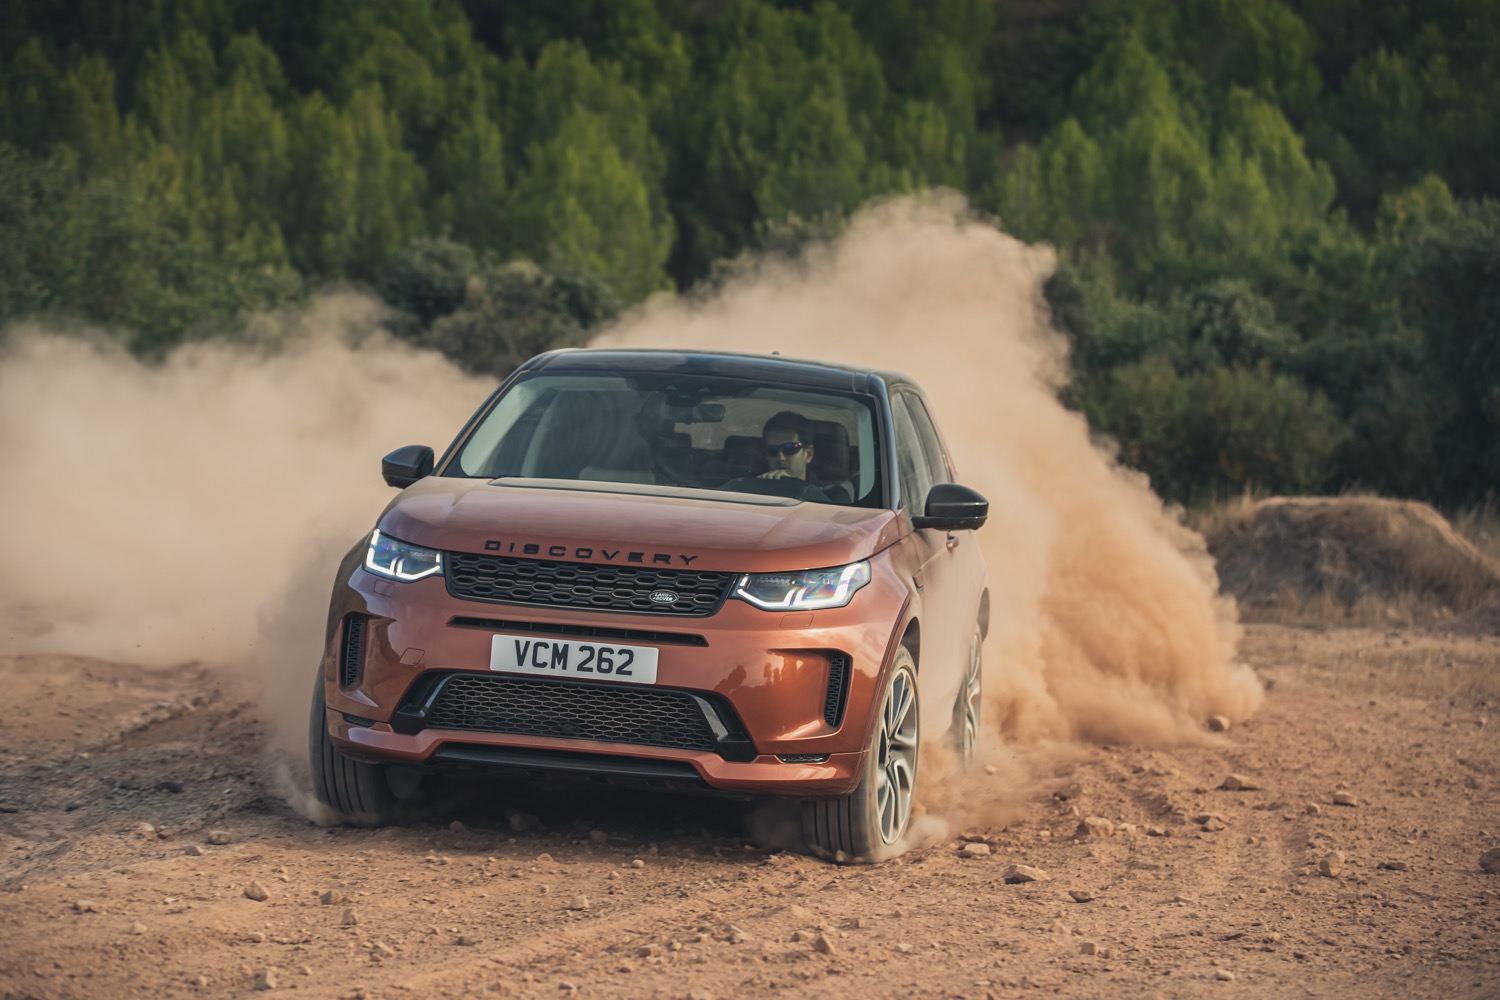 2020_land_rover_discovery_sport_facelift_11